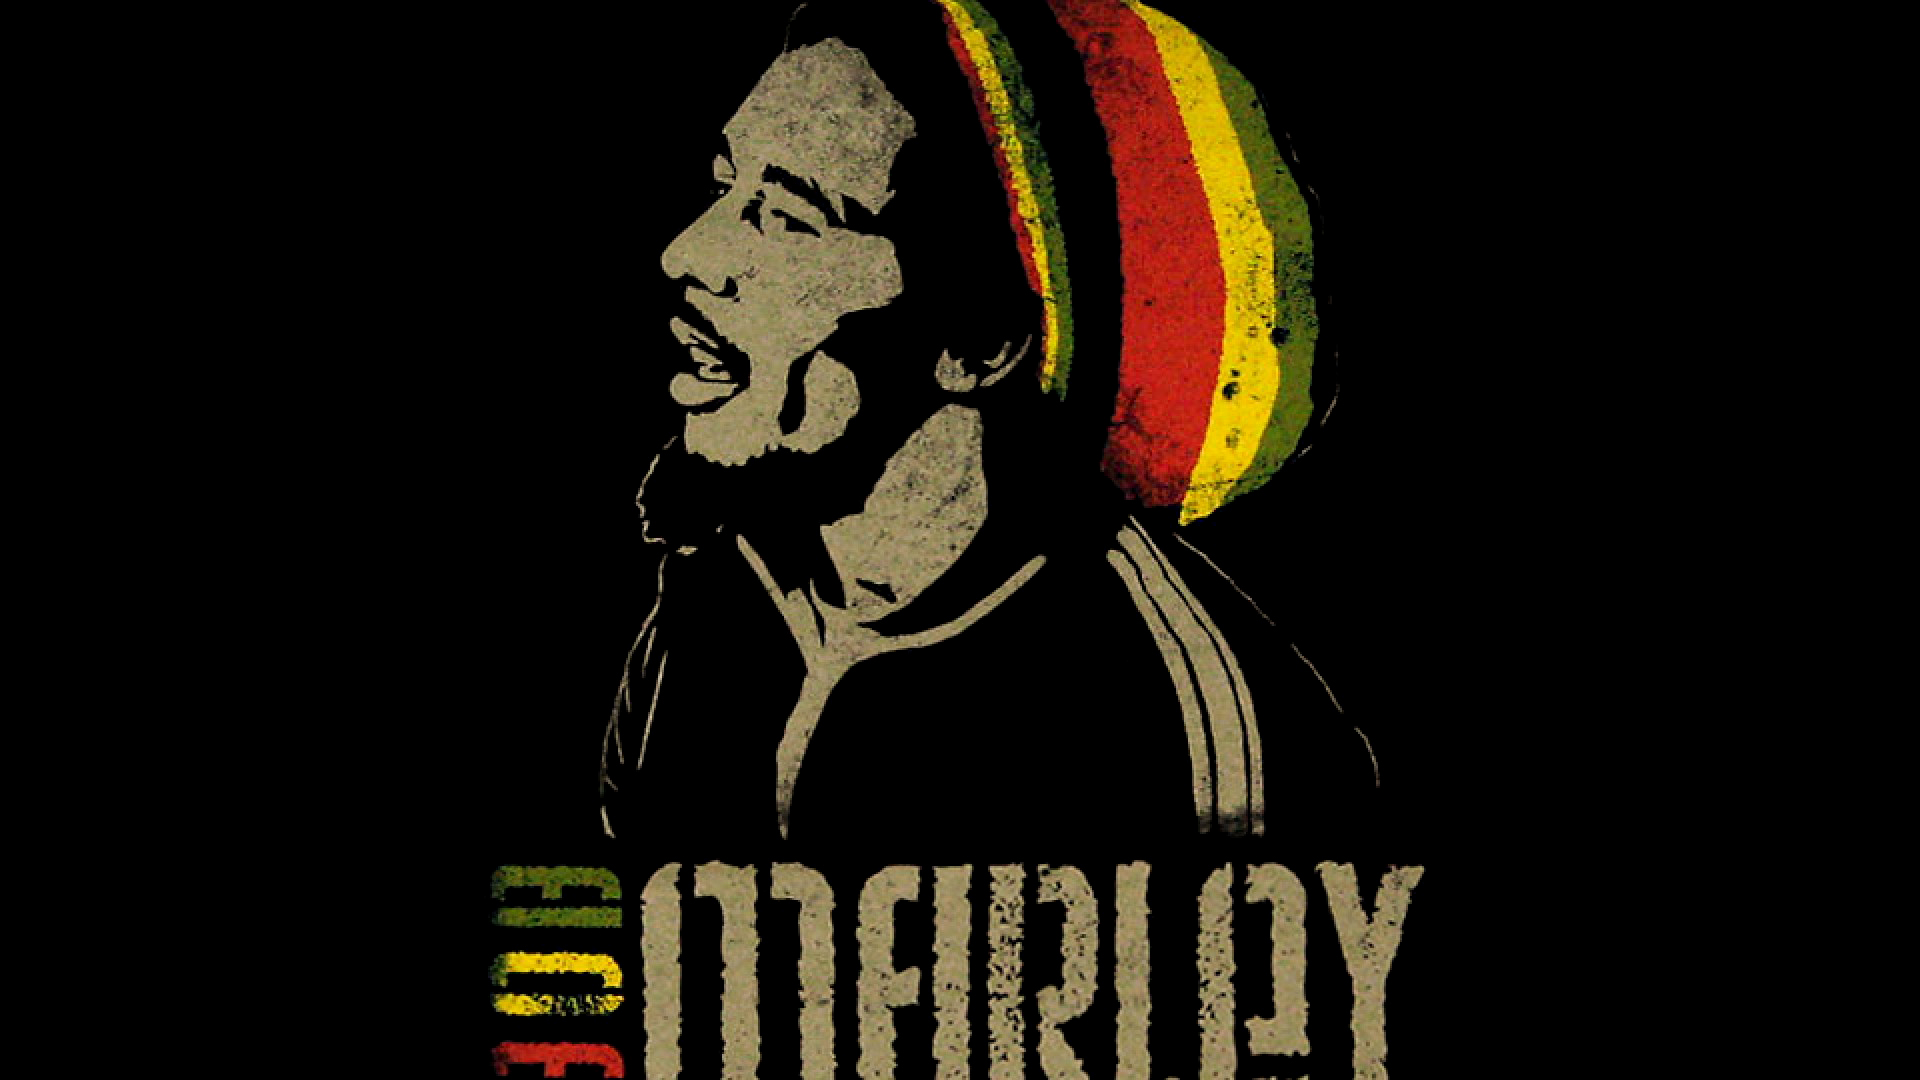 Bob Marley Hd Wallpapers further Lilpump likewise Best Louis Vuitton Retina Wallpapers For Iphone 5 furthermore 17 Screencaps From The Up ning Bond Movie Spectre additionally 837464. on gucci background tumblr